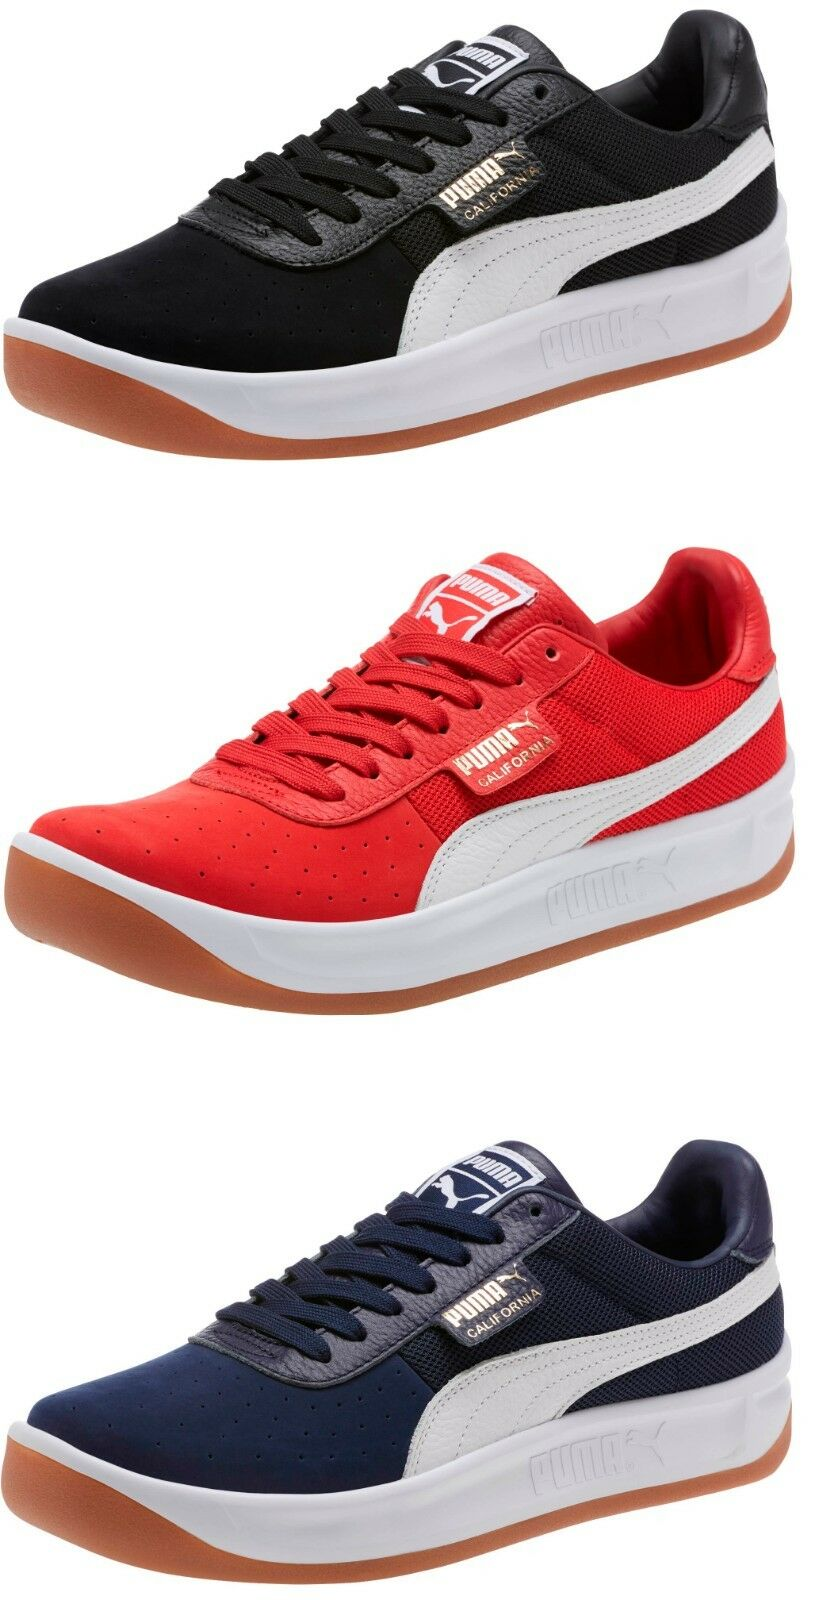 Puma CALIFORNIA CASUAL Homme Sneaker Lifestyle Chaussures